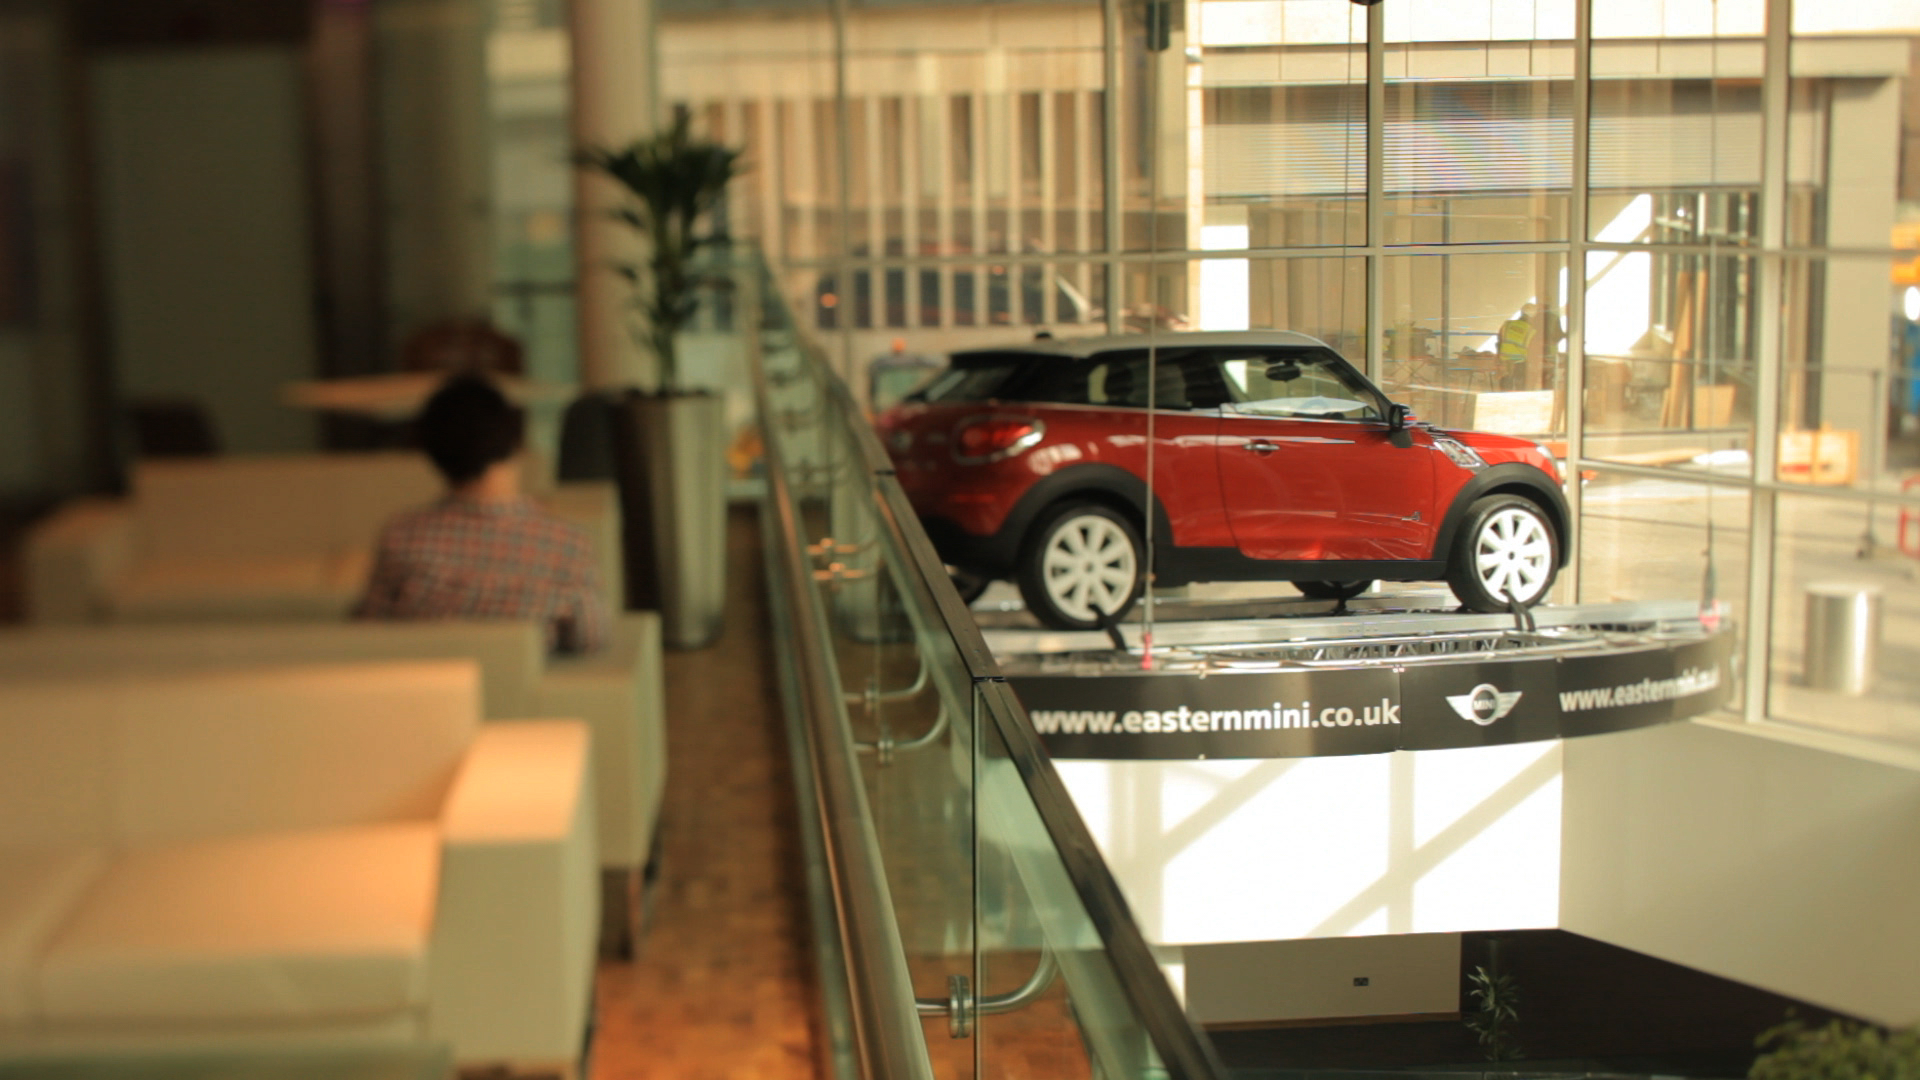 Mini Cooper displayed in the Atrium